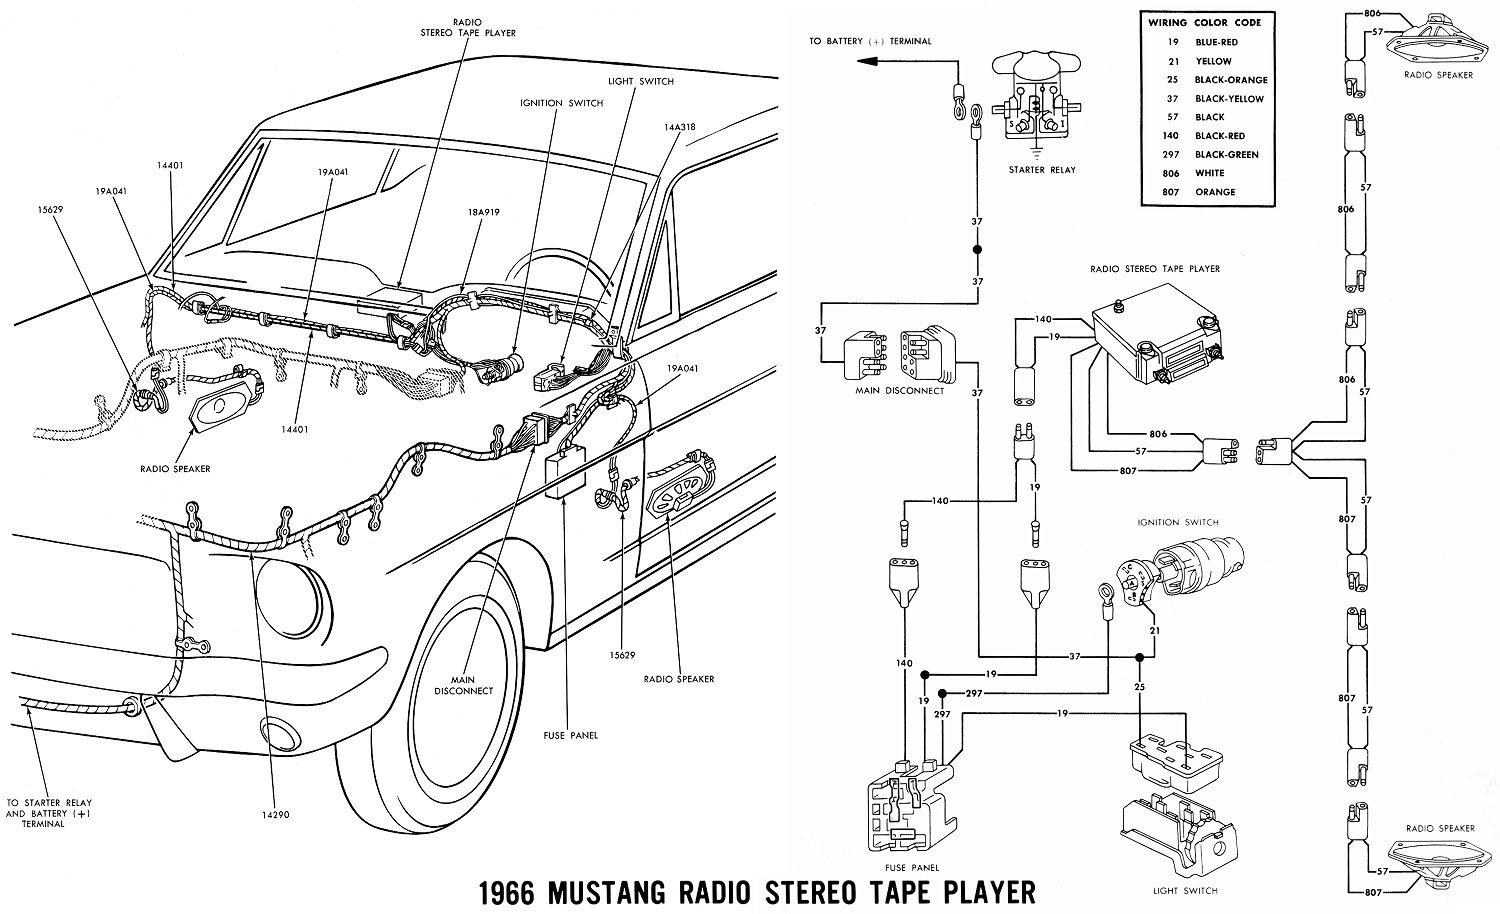 New Wiring Harness 1966 Ford Galaxie on 1964 Pontiac Catalina Wiring Diagram